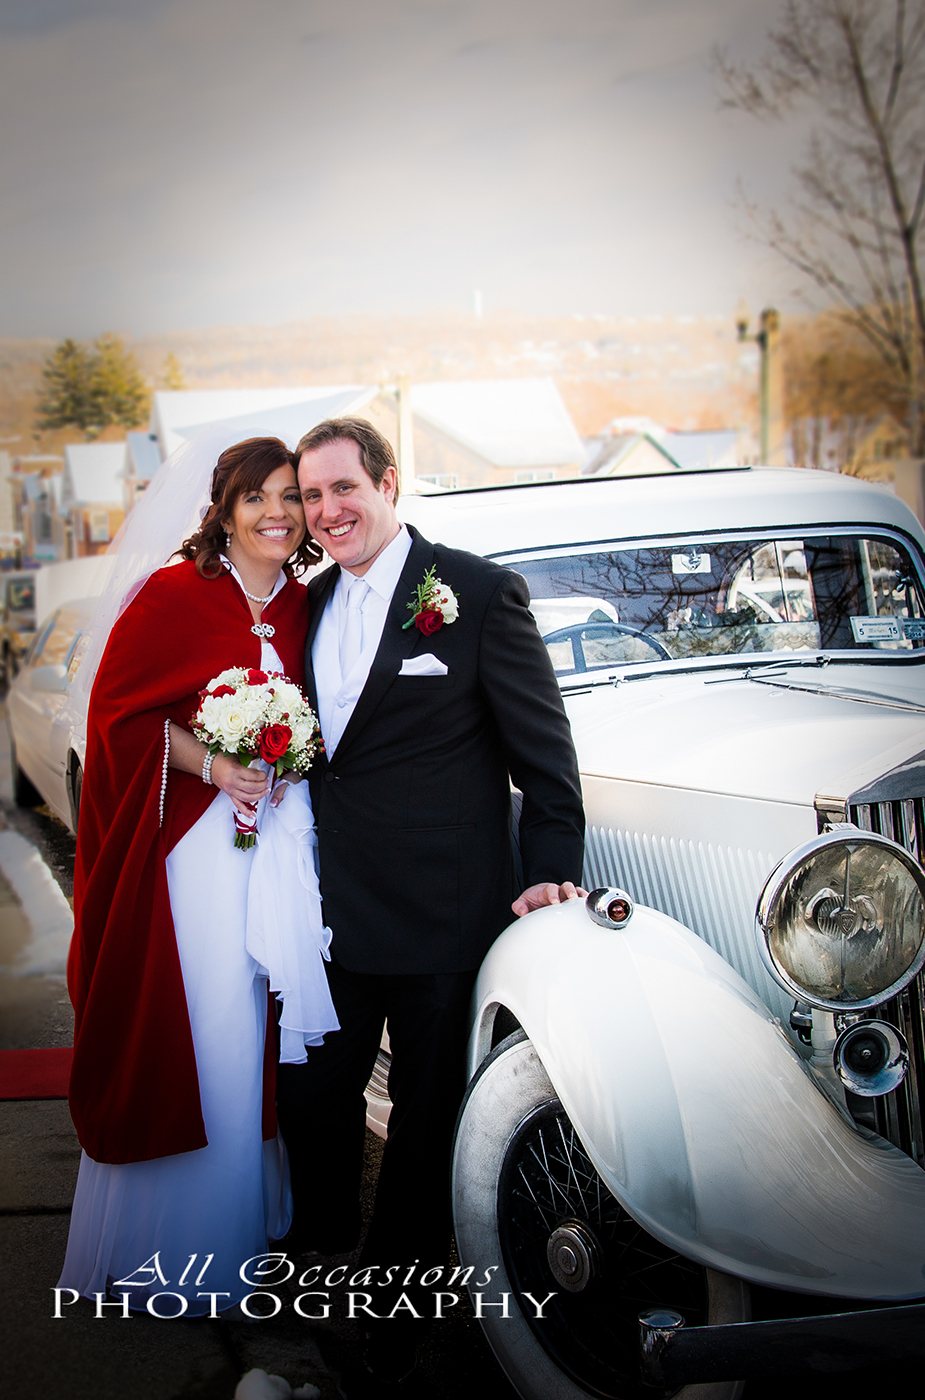 All Occasions Photography Albany NY - Wedding Photography Winter Wedding by Classic White Car